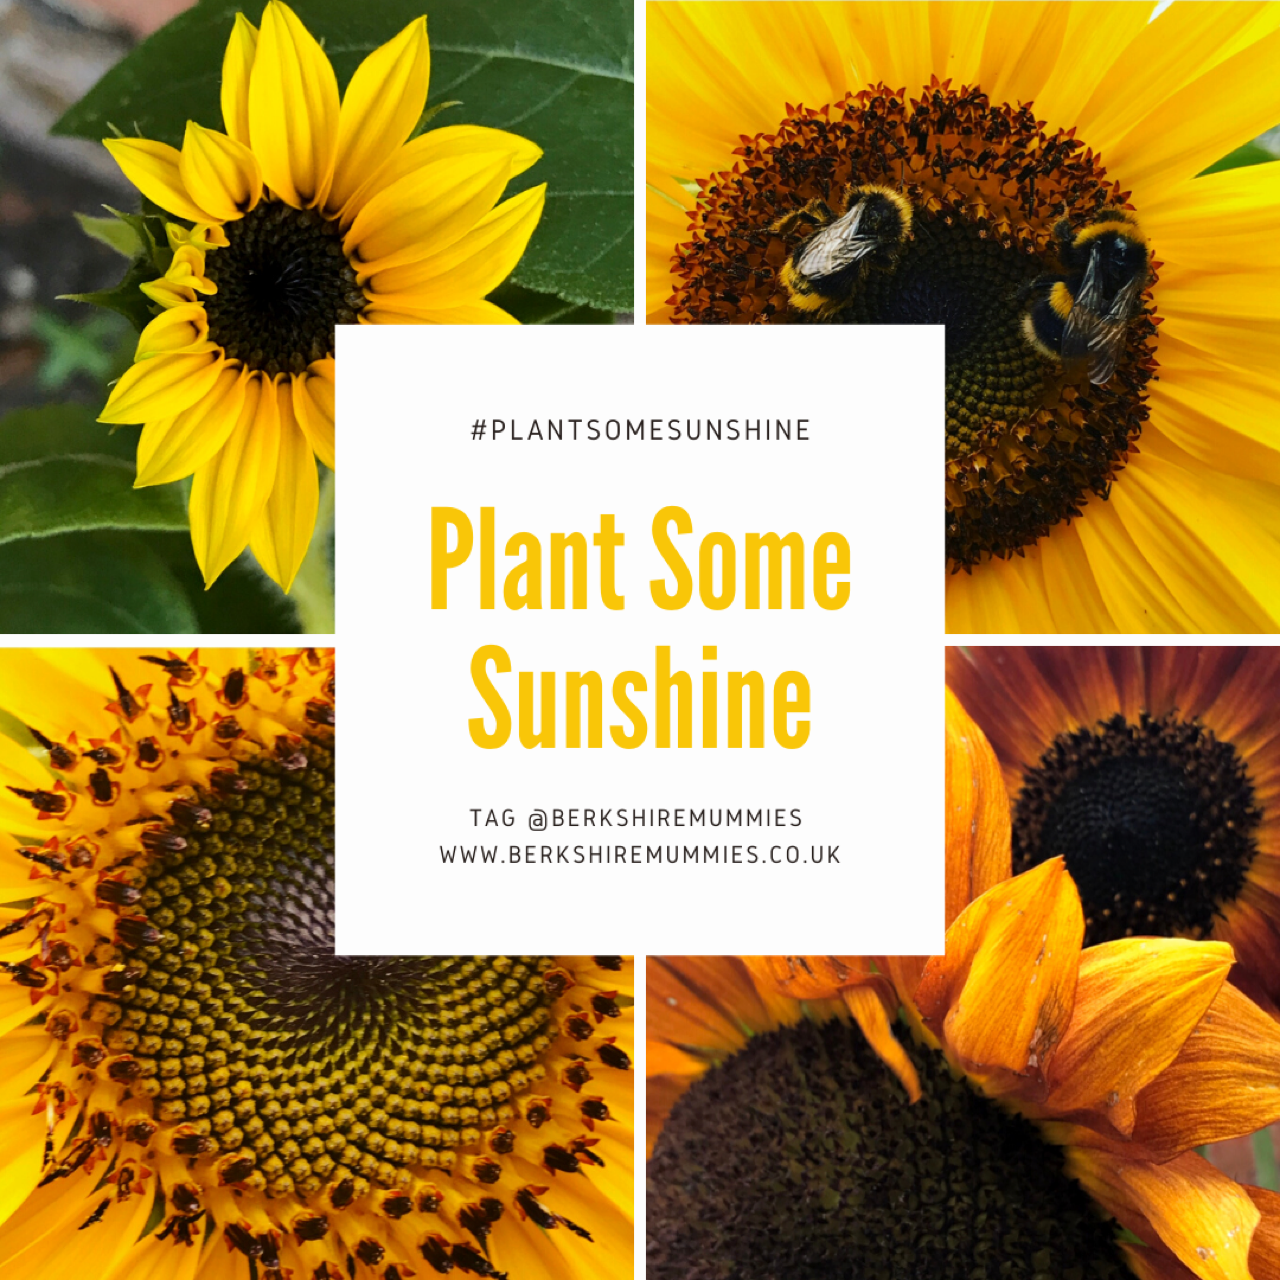 Growing sunflowers to #plantsomesunshine